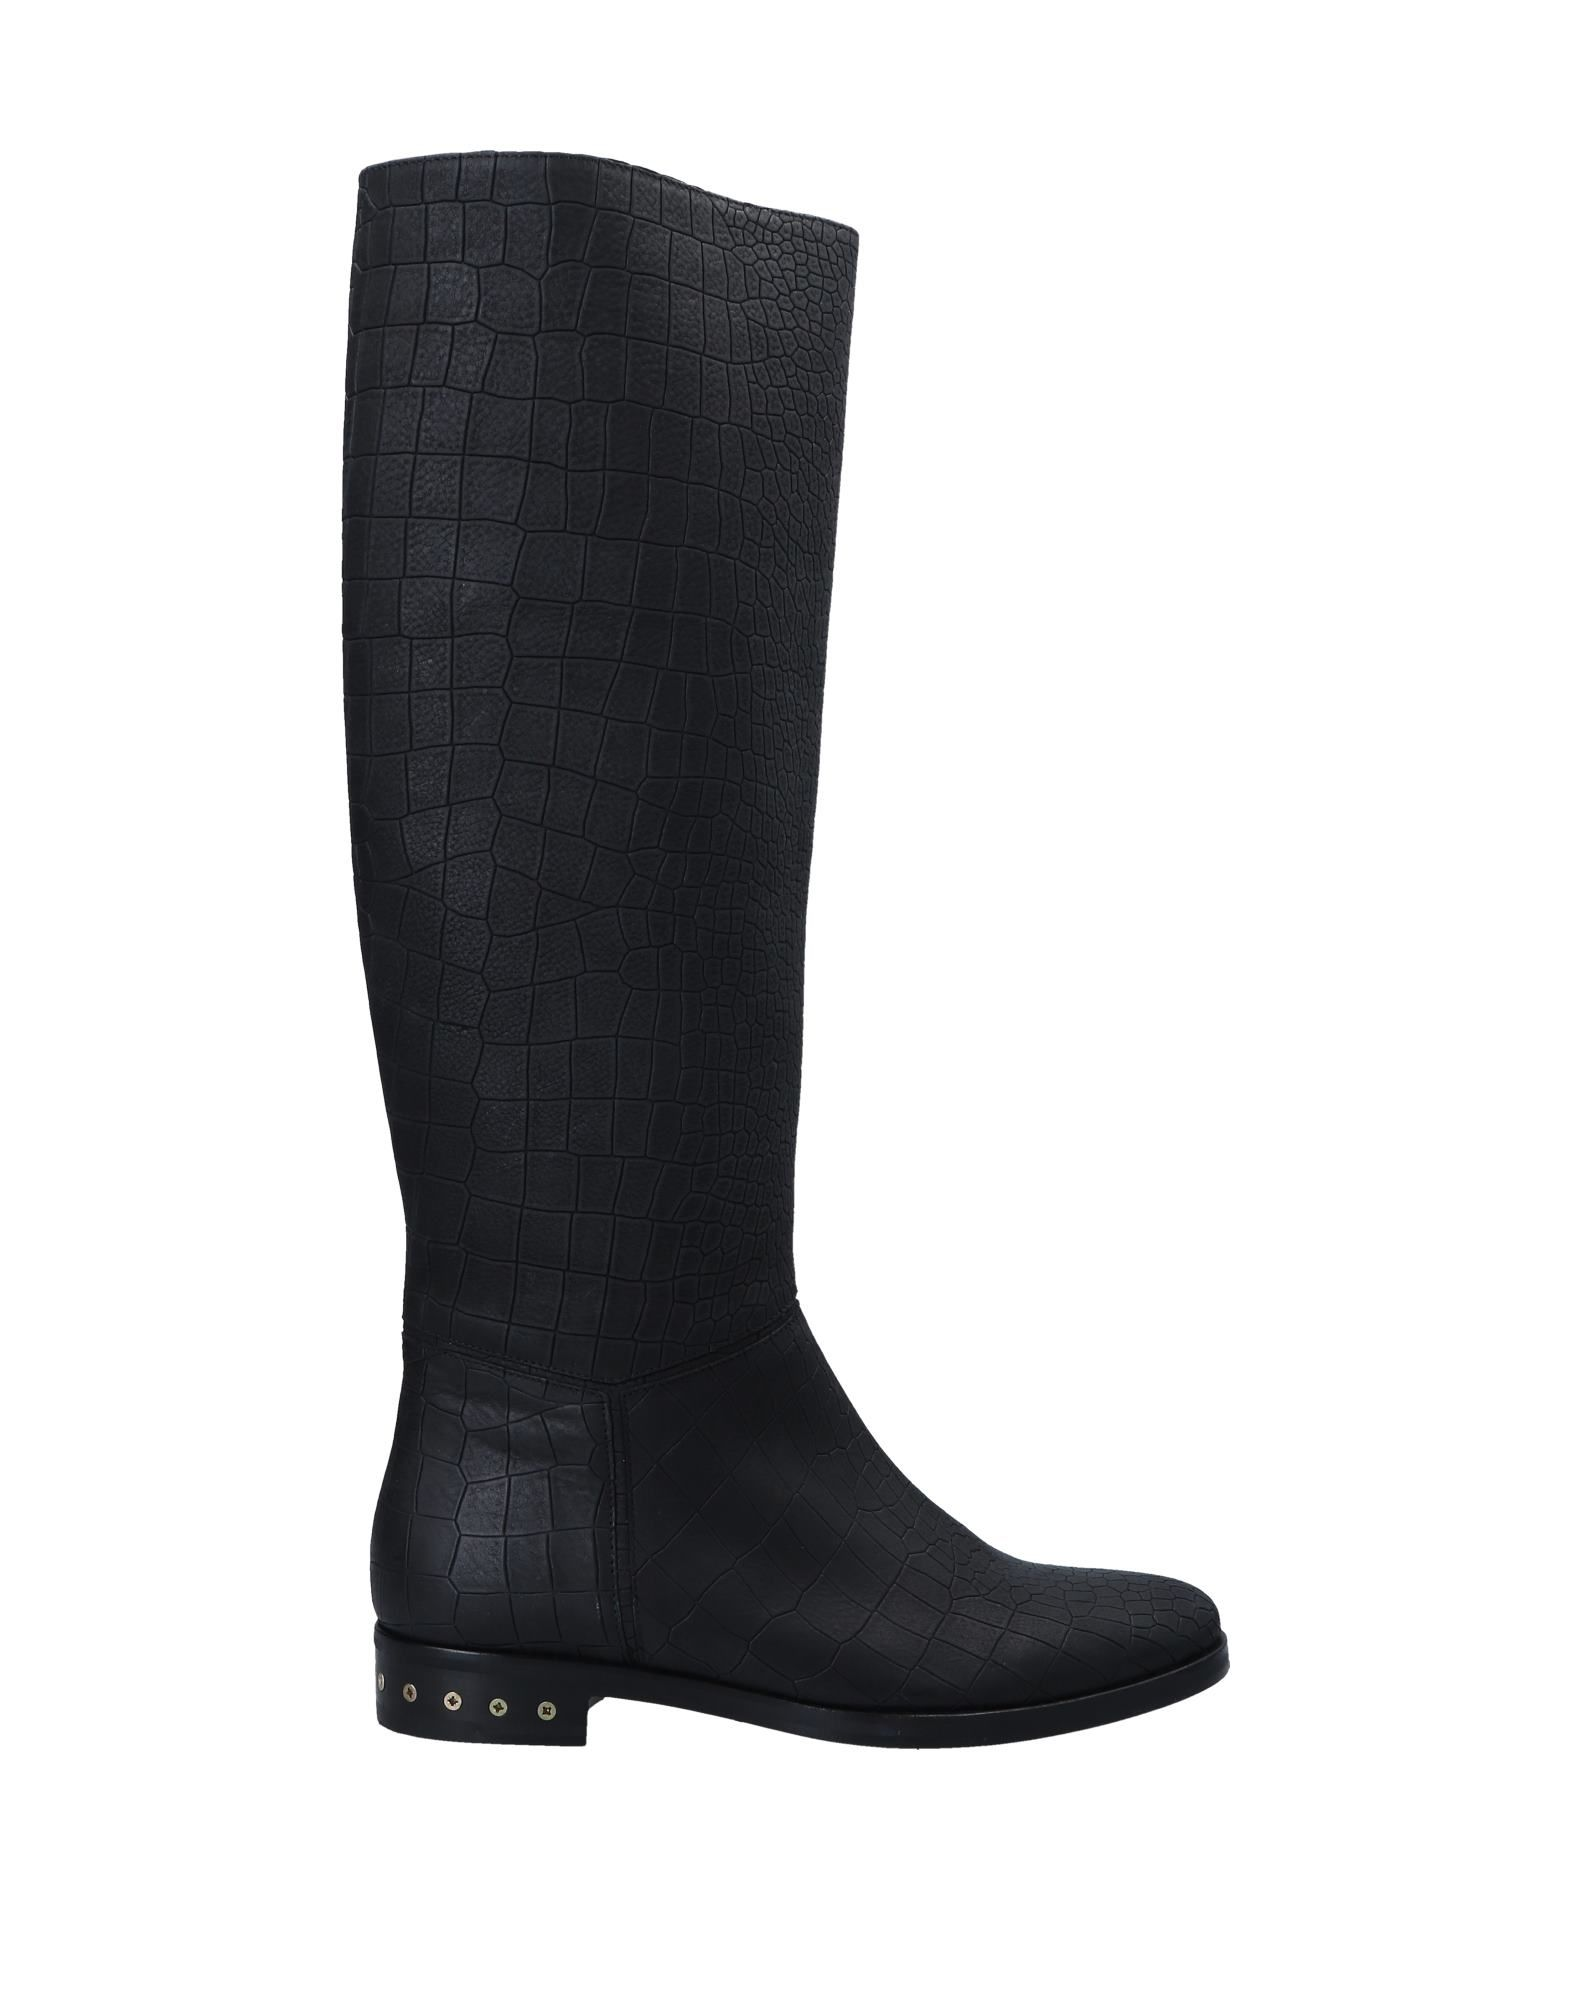 Lanvin Boots - Women Lanvin Boots Kingdom online on  United Kingdom Boots - 11551310BE b35c8a